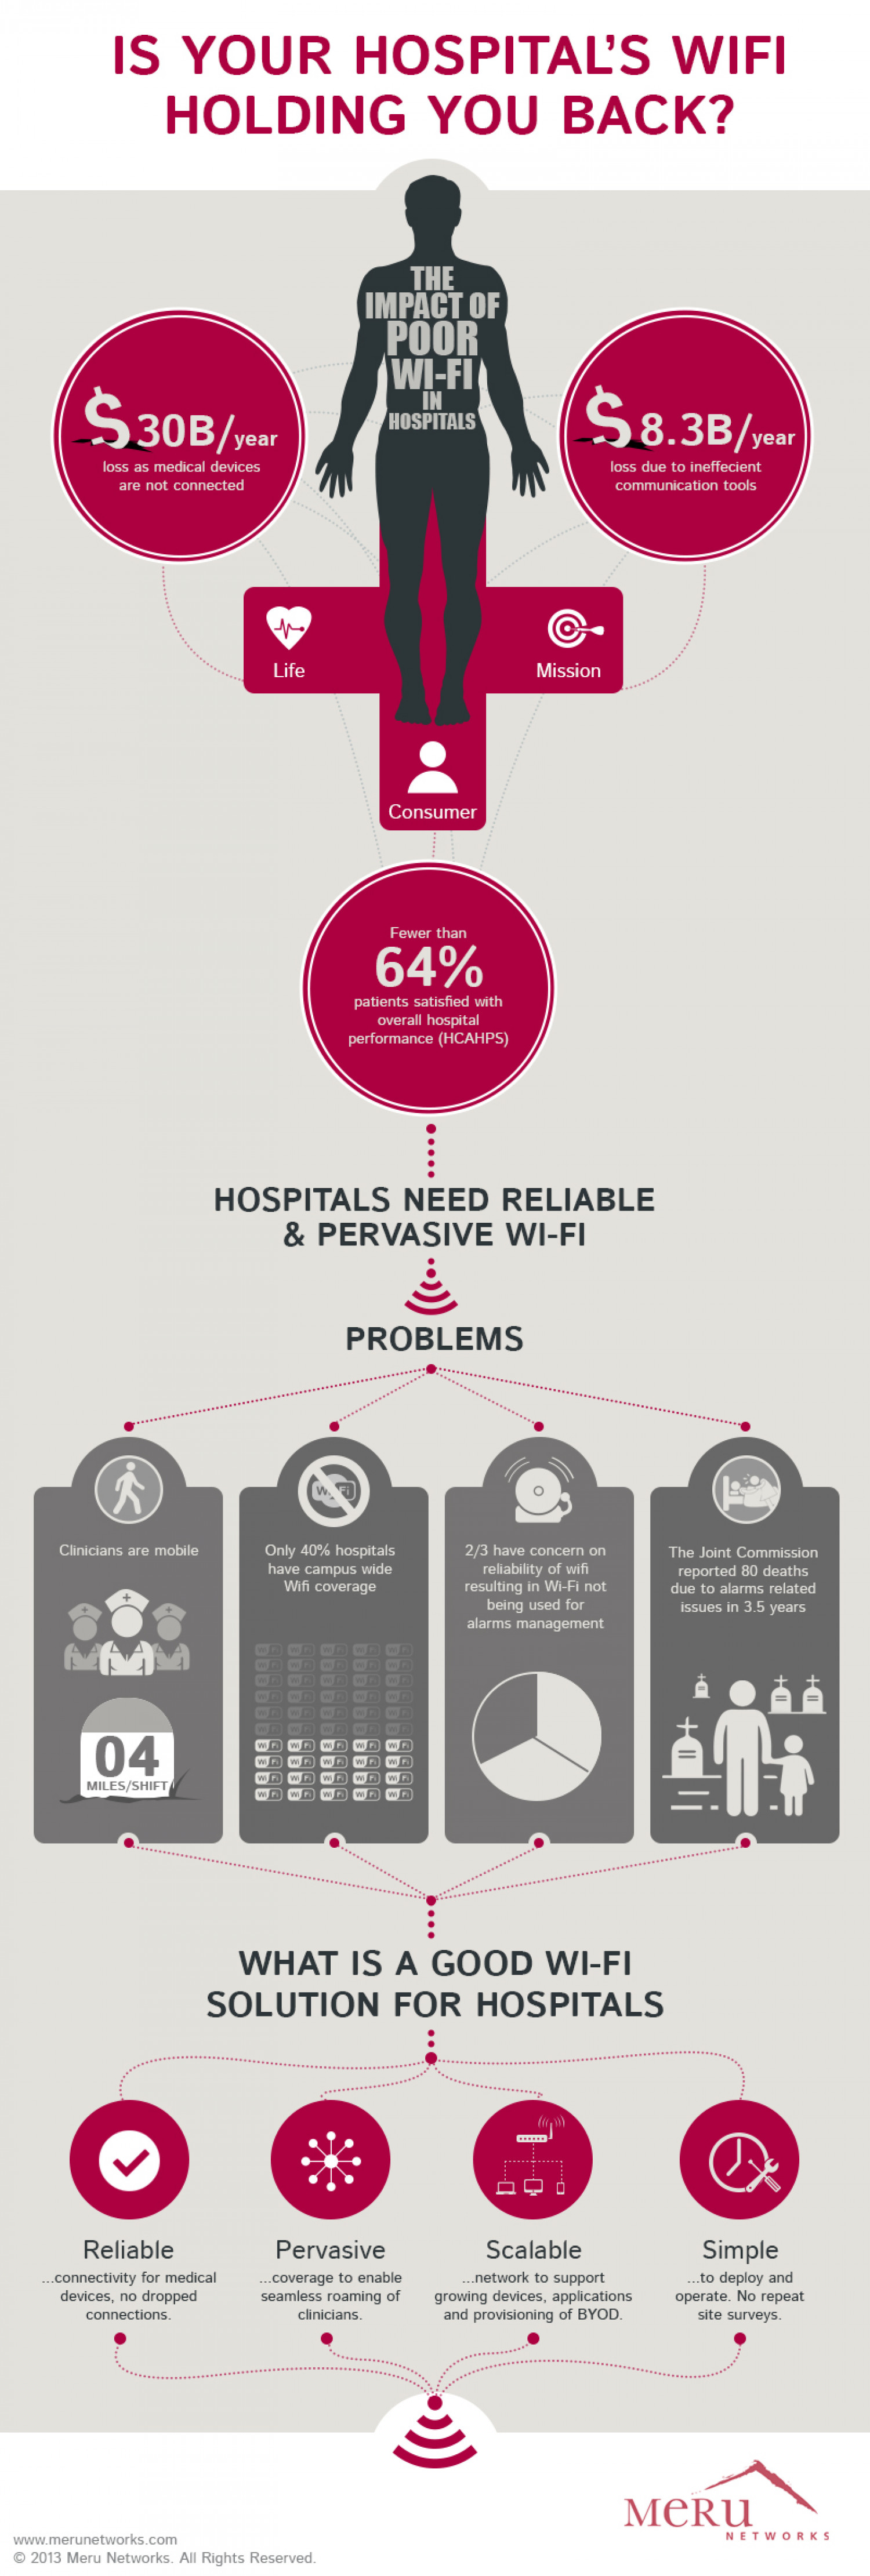 HOSPITAL WI-FI: what works and why Infographic